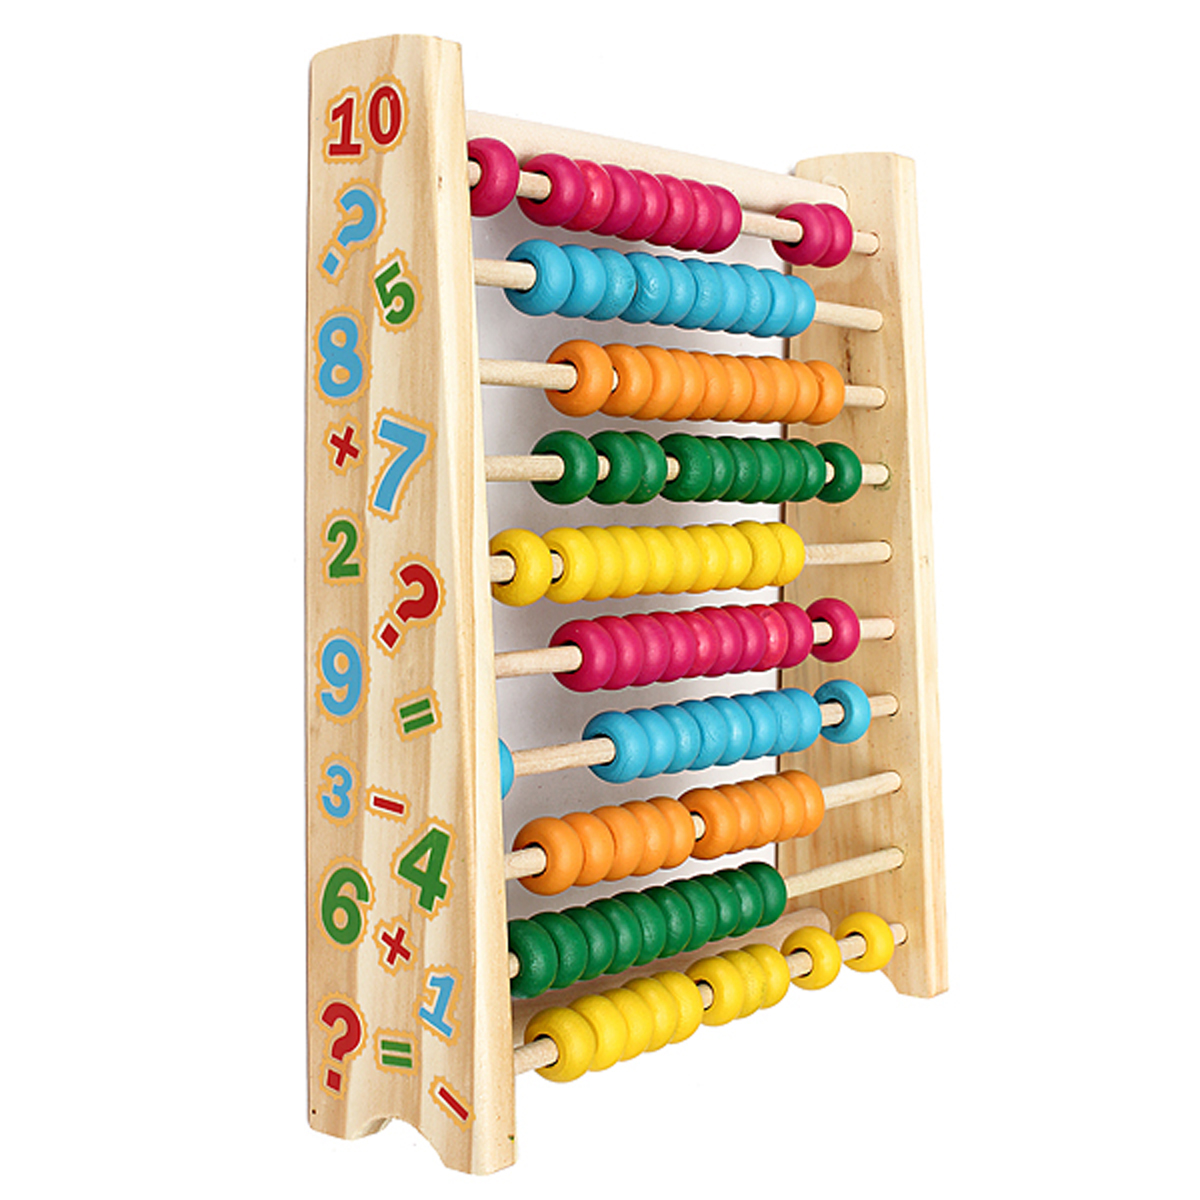 Wooden Abacus-Classic and Colorful Children's Math and Counting Sticks Toy with Free-Standing Frame and 100 Beads-Learning and Educational